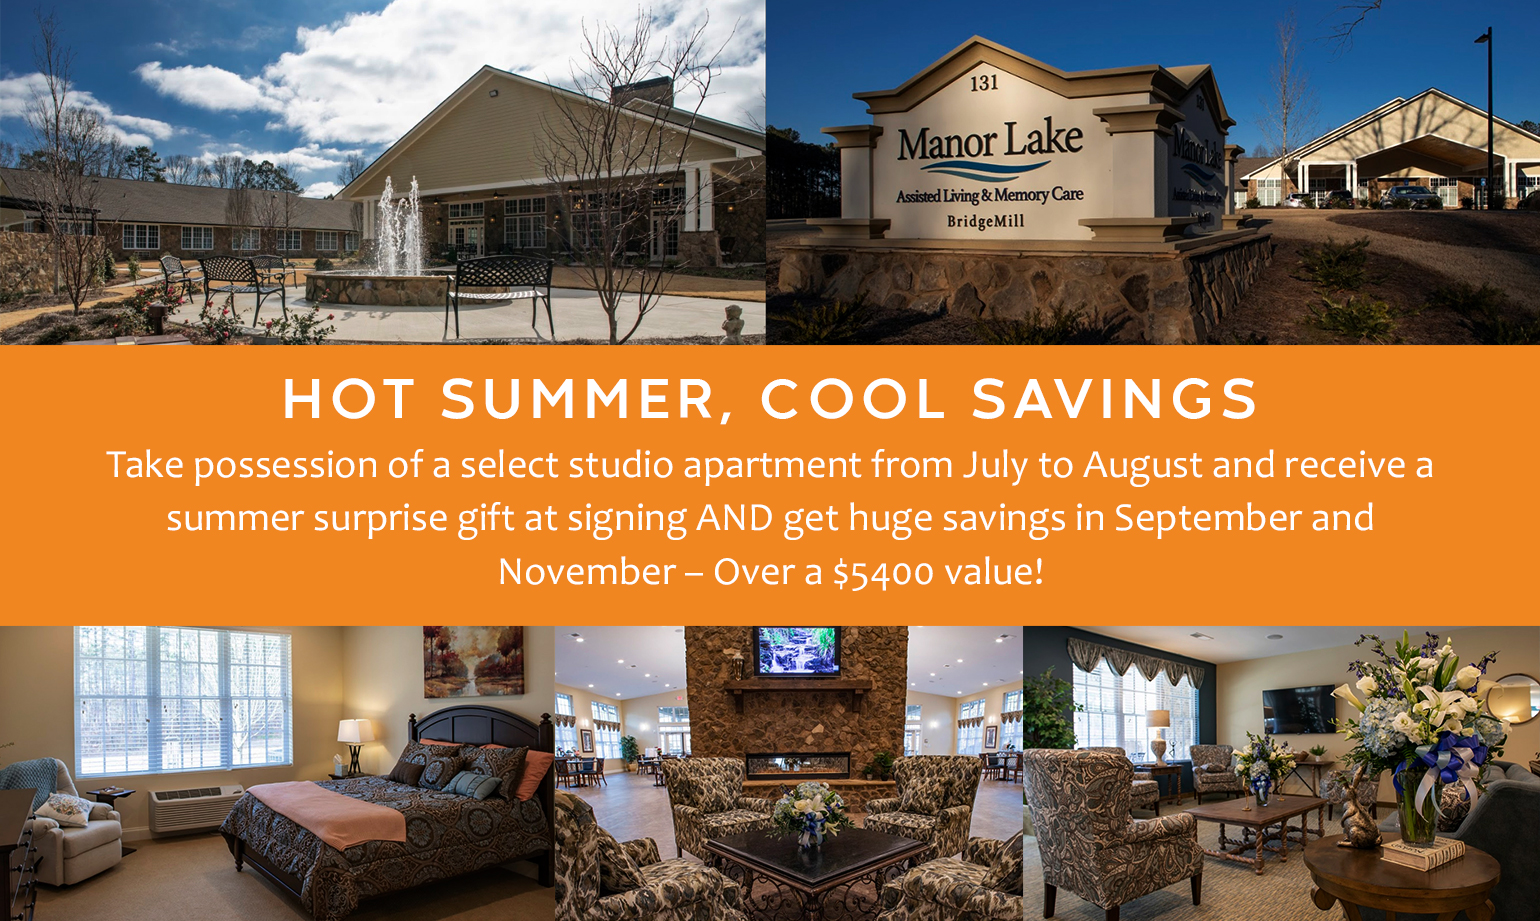 Hot Summer, Cool Savings